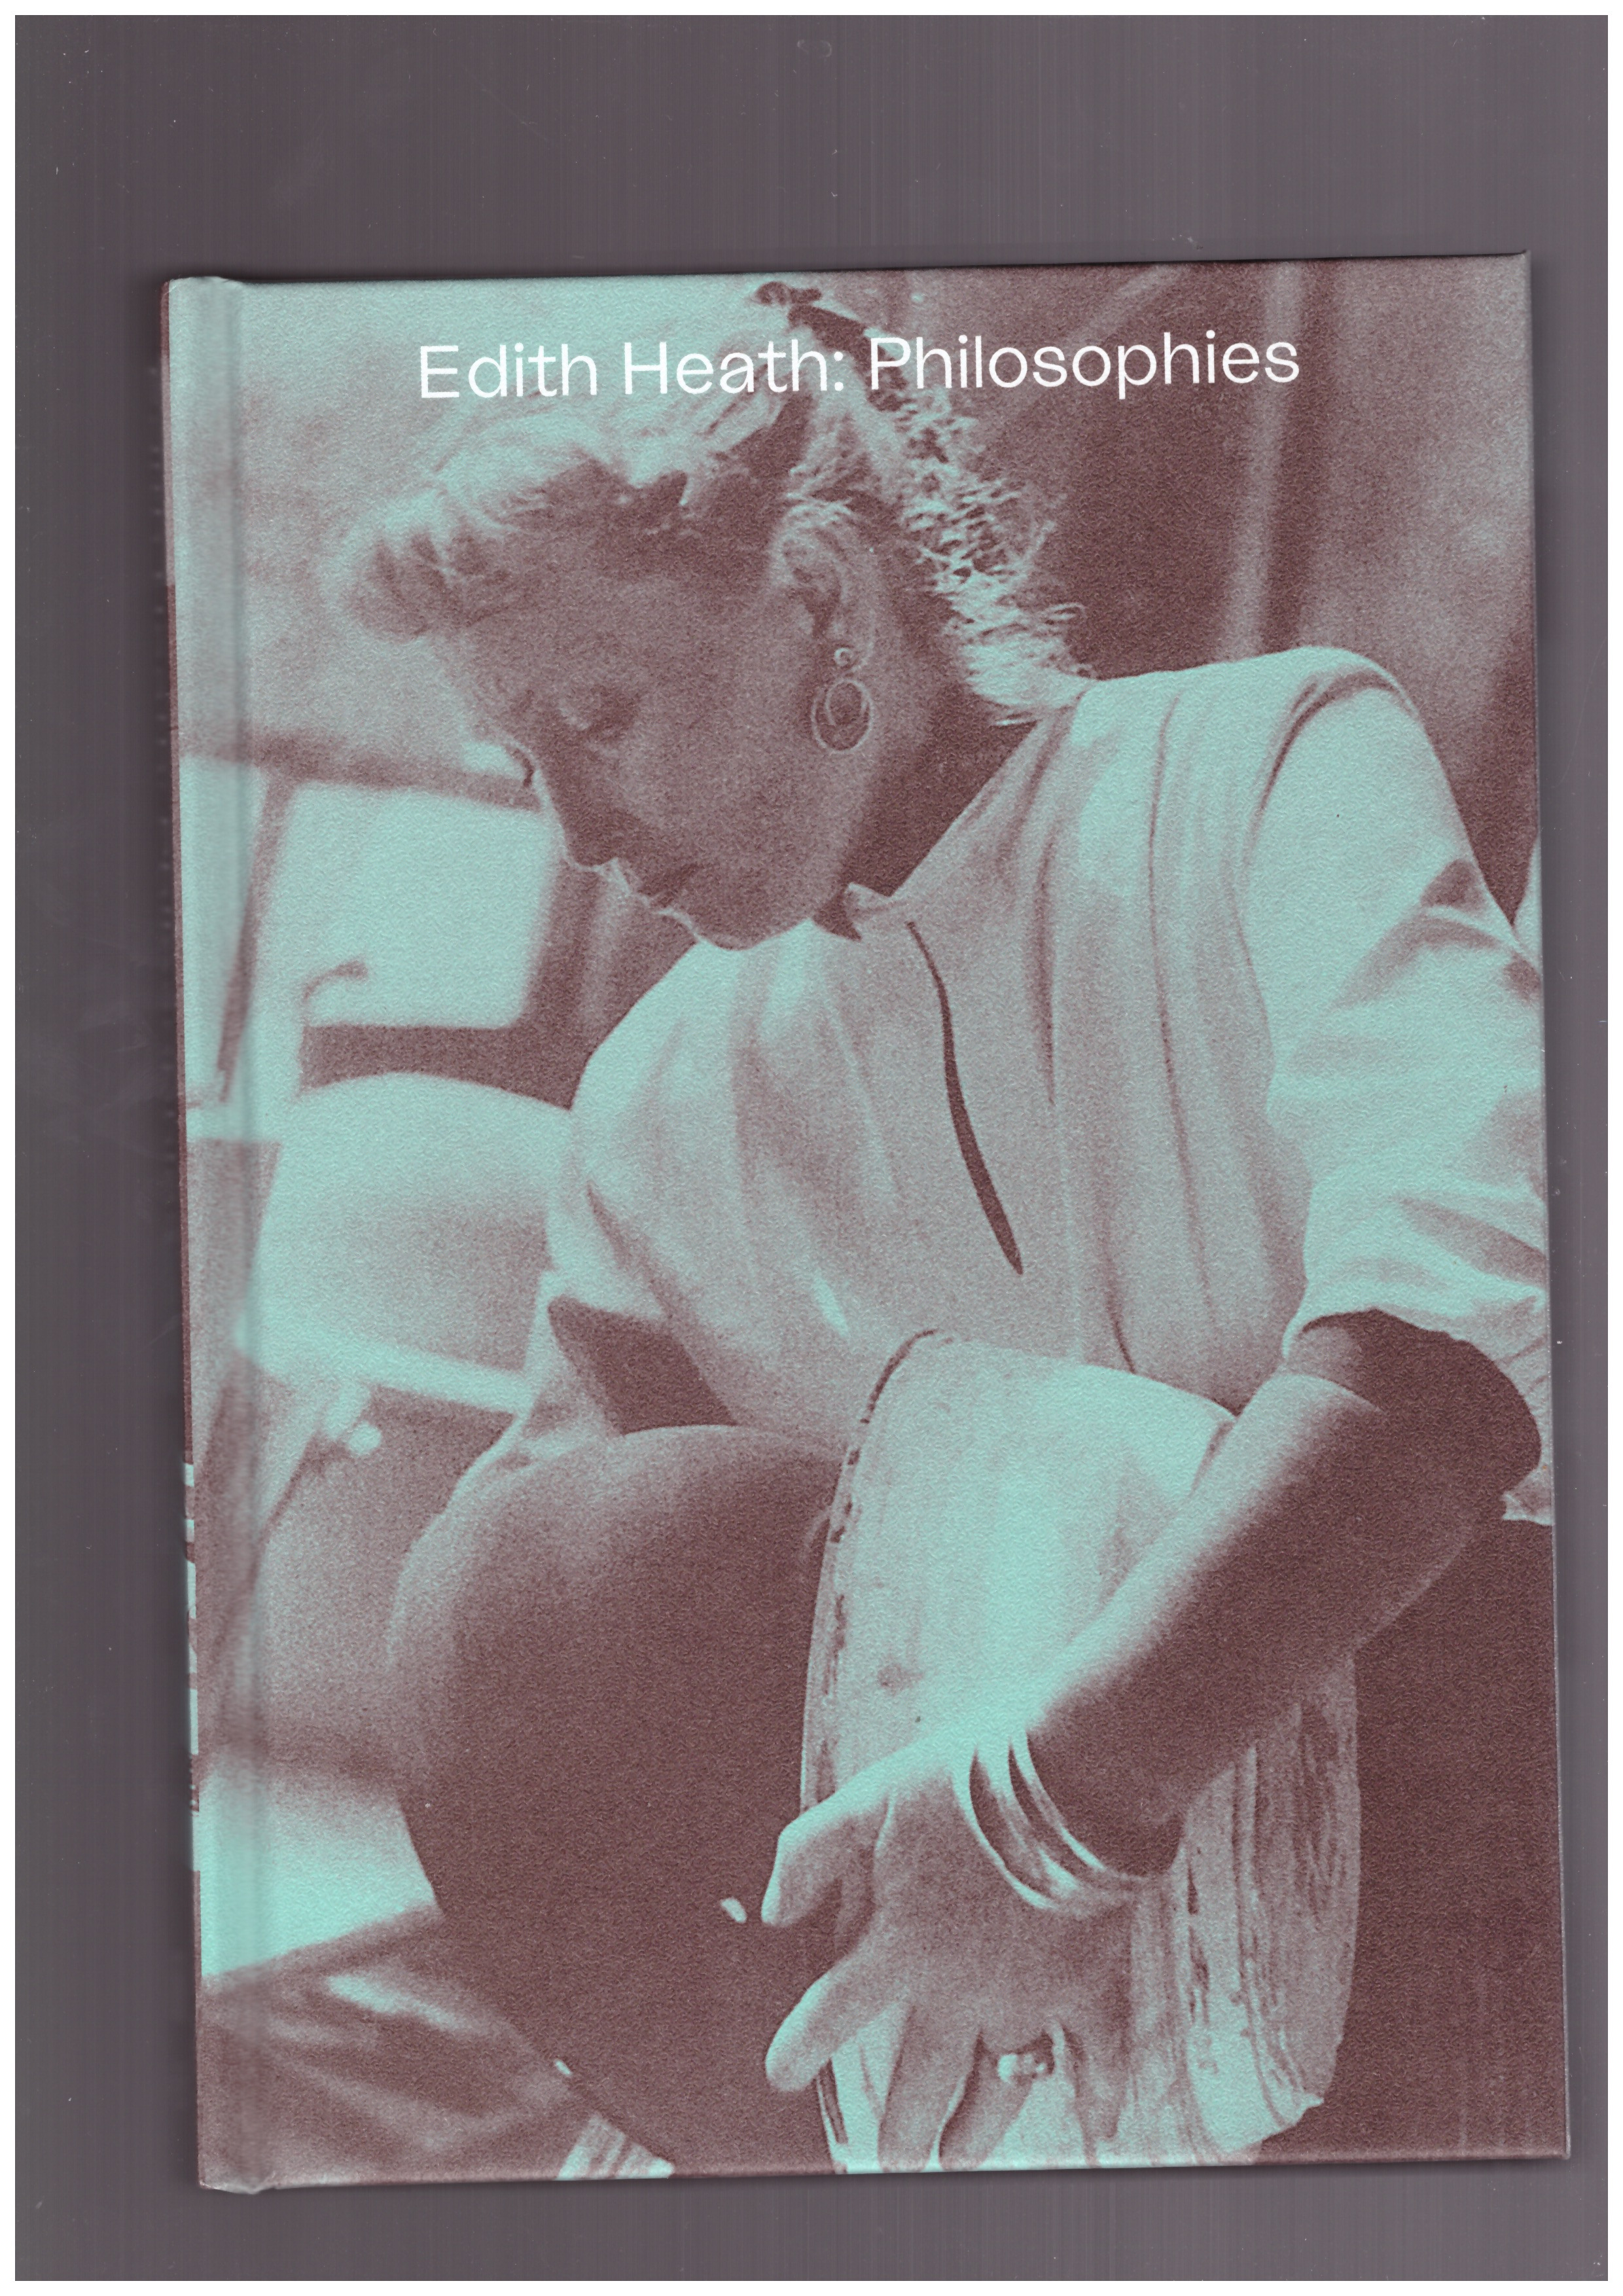 VOLLAND, Jennifer M. ; MARINO, Chris (eds.) - Edith Heath : Philosophies